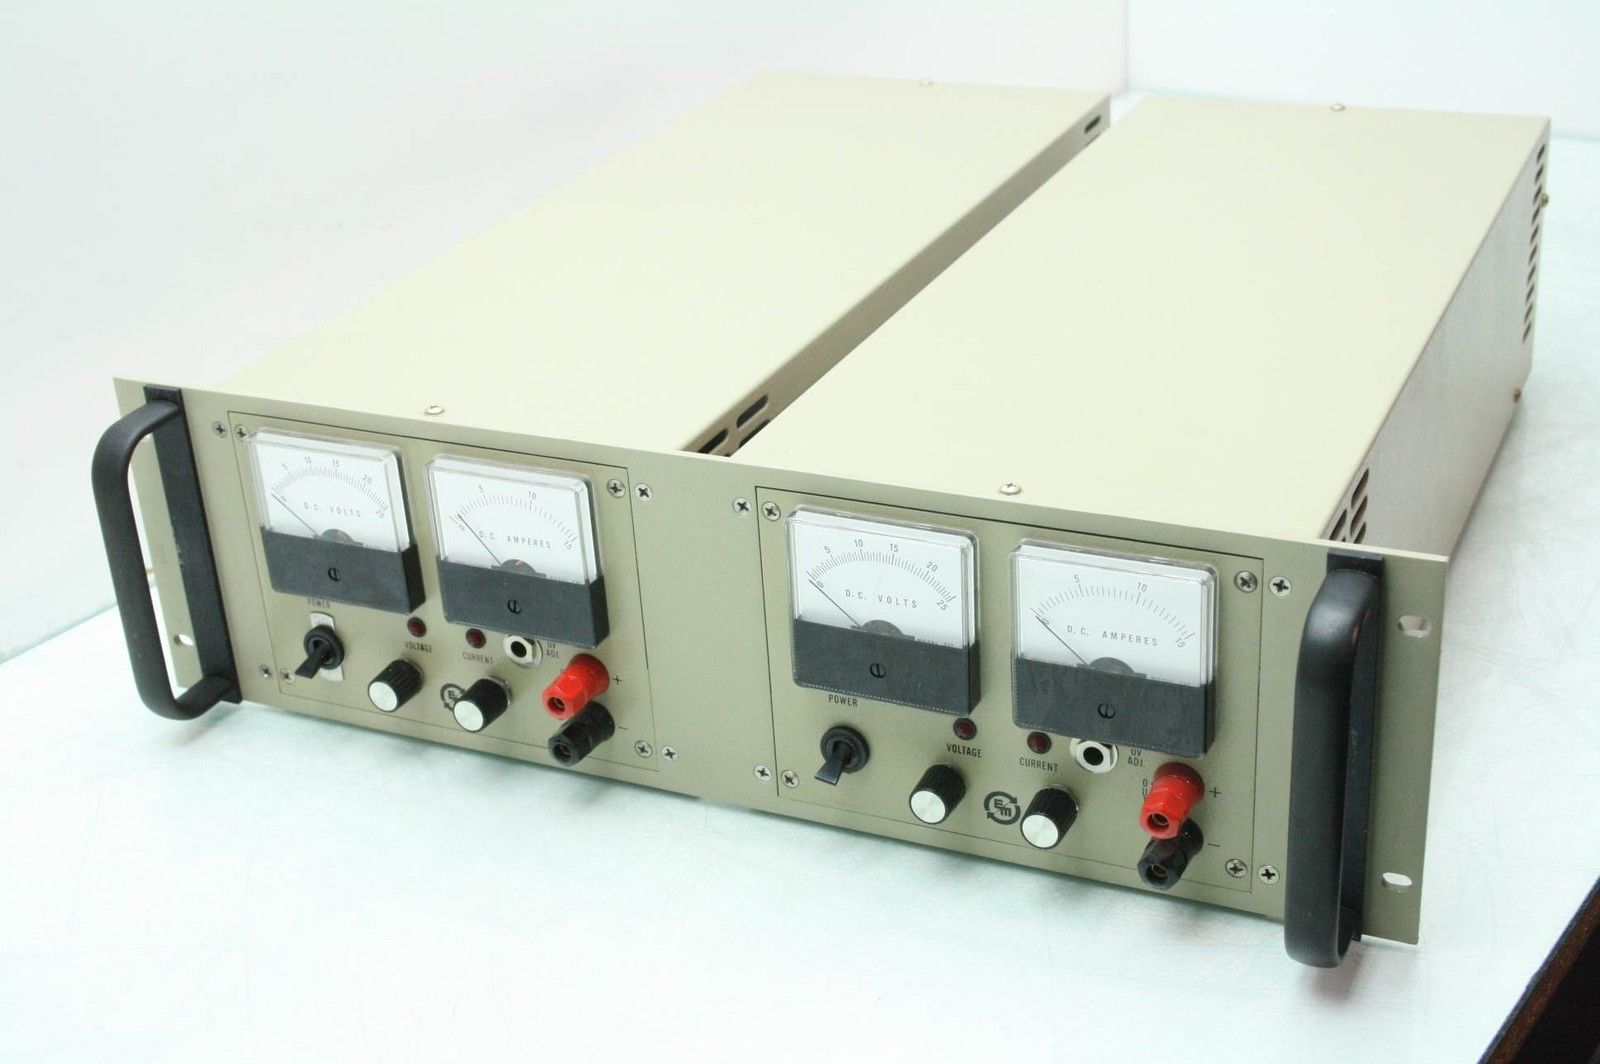 2 Electronic Measurements EM HCR-20-13-110 Power Supply 0-20V @ 0-13A / G-B  - Used